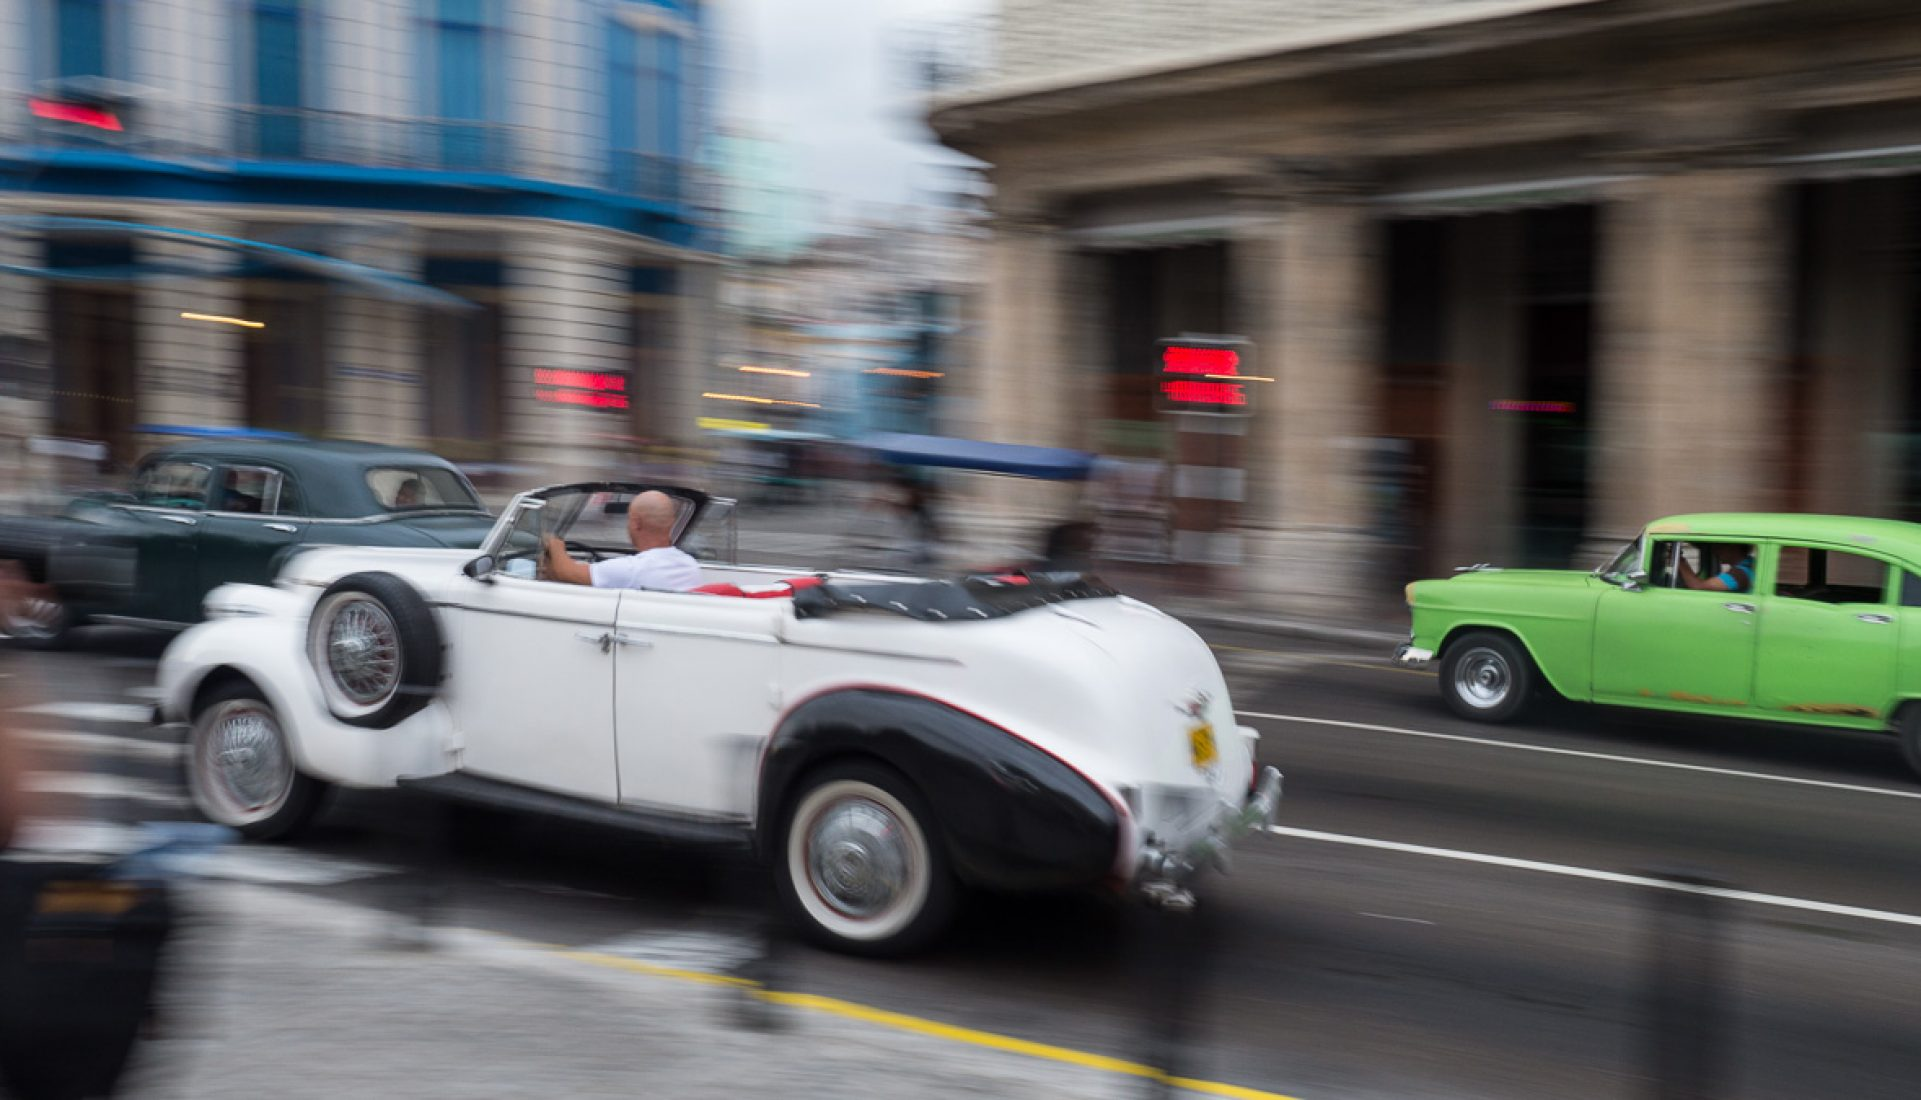 On the Go – The Yank Tanks of Havana, Cuba